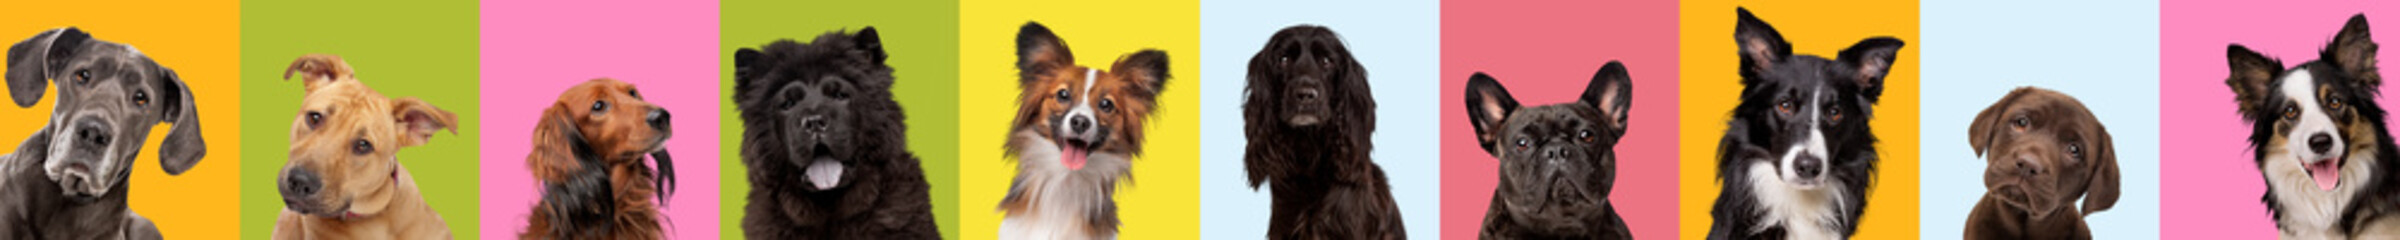 Collage of ten different dog breeds on multicolored bright background